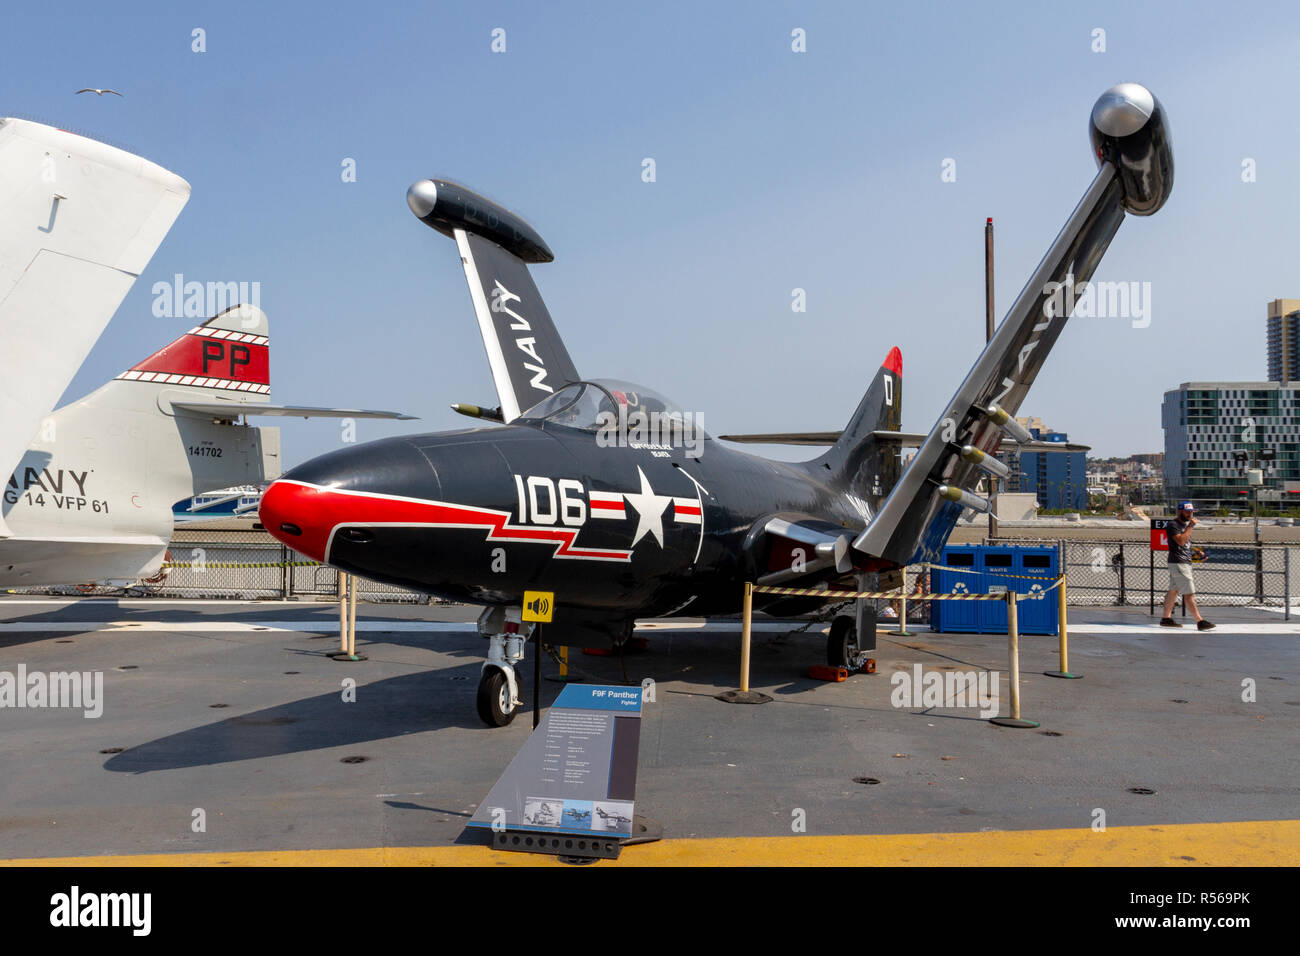 A F9F Panther fighter aircraft by Grumman Aerospace, USS Midway, San Diego, California, United States. - Stock Image